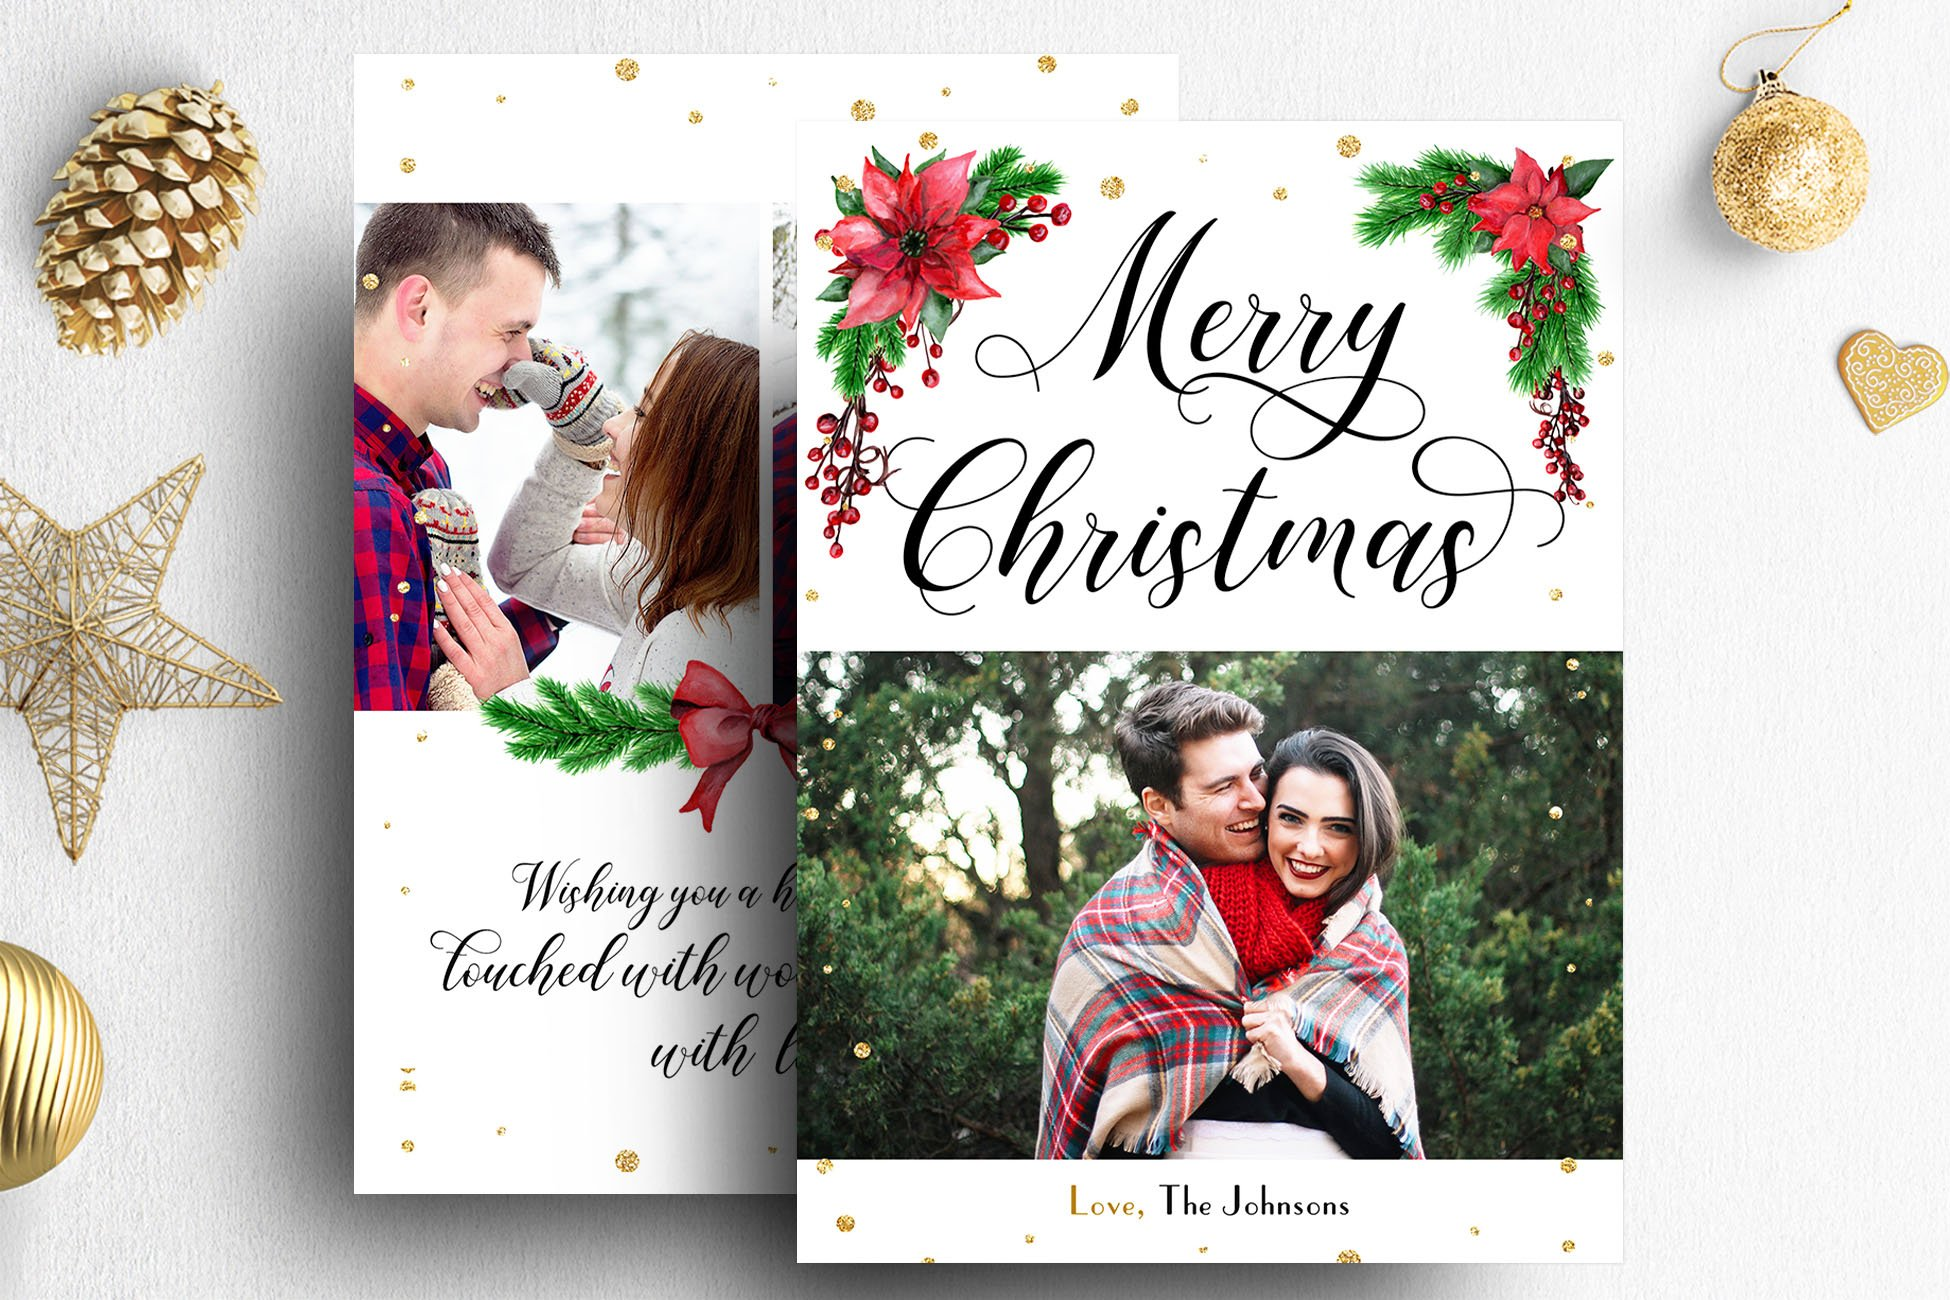 Christmas Card Photoshop Template ~ Card Templates ~ Creative Market